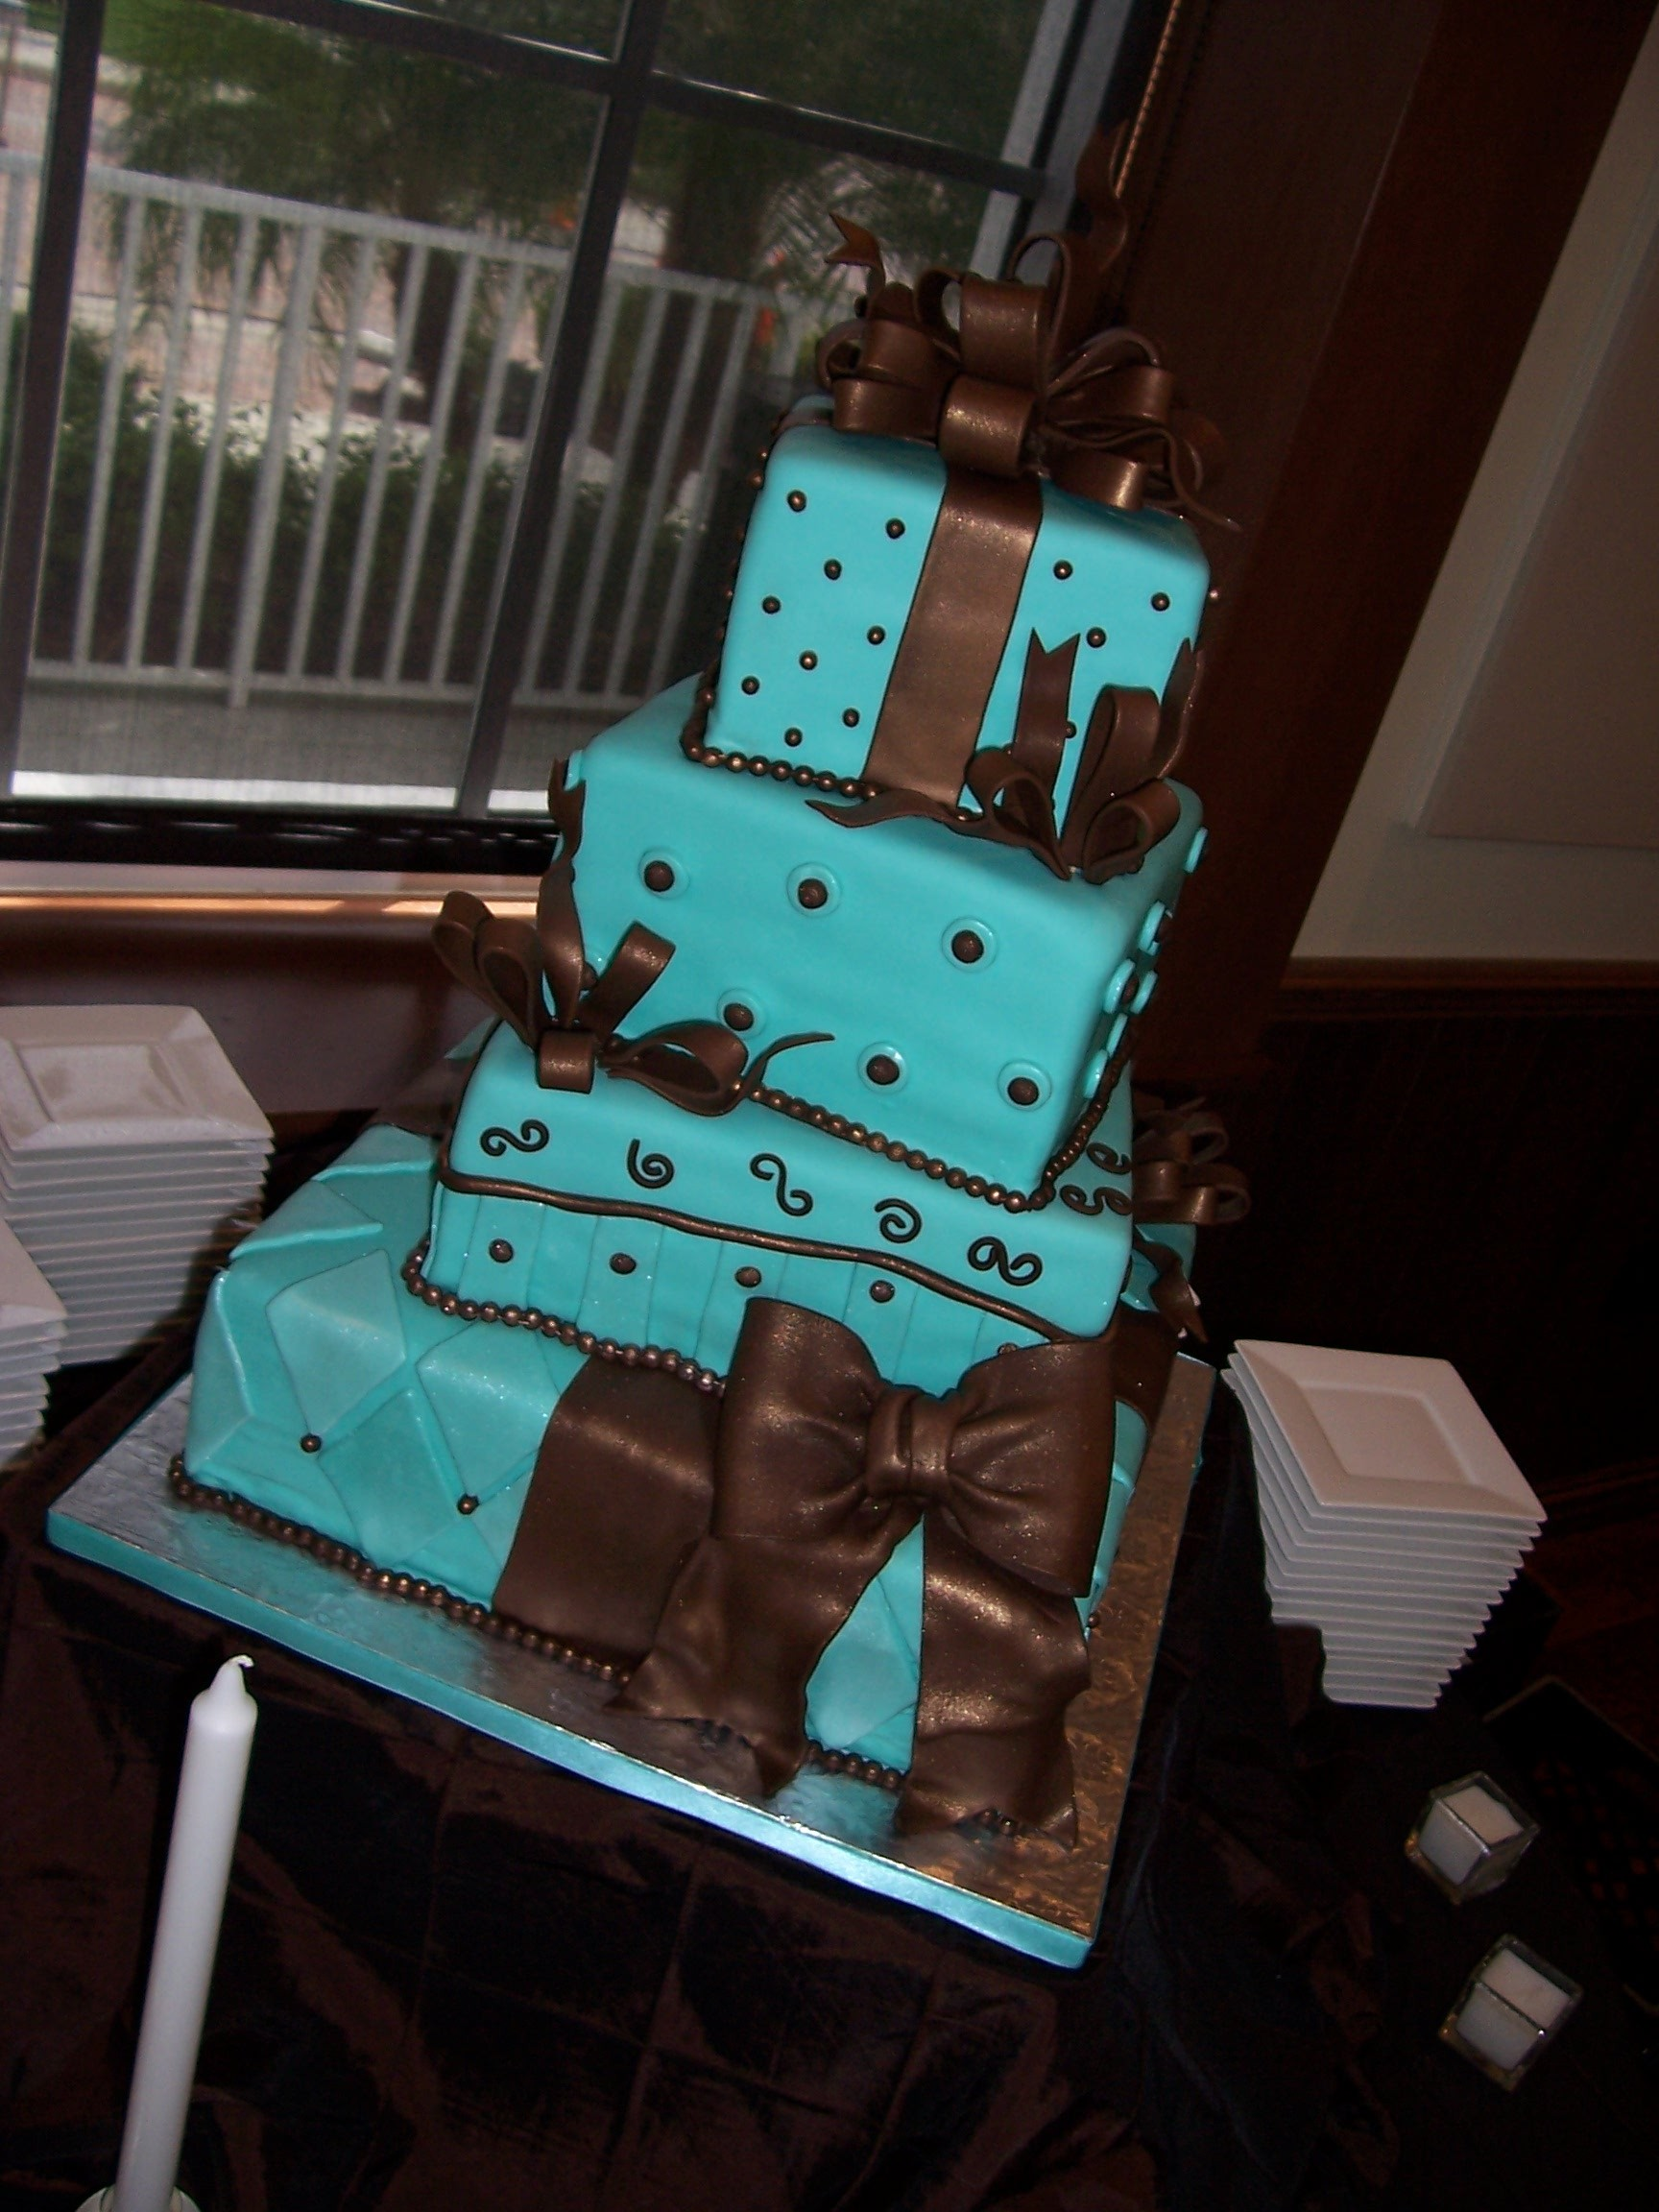 Cakes, blue, brown, cake, Gifts, Fondant, Pearls, Tiffany, Bow, Sandras cakes